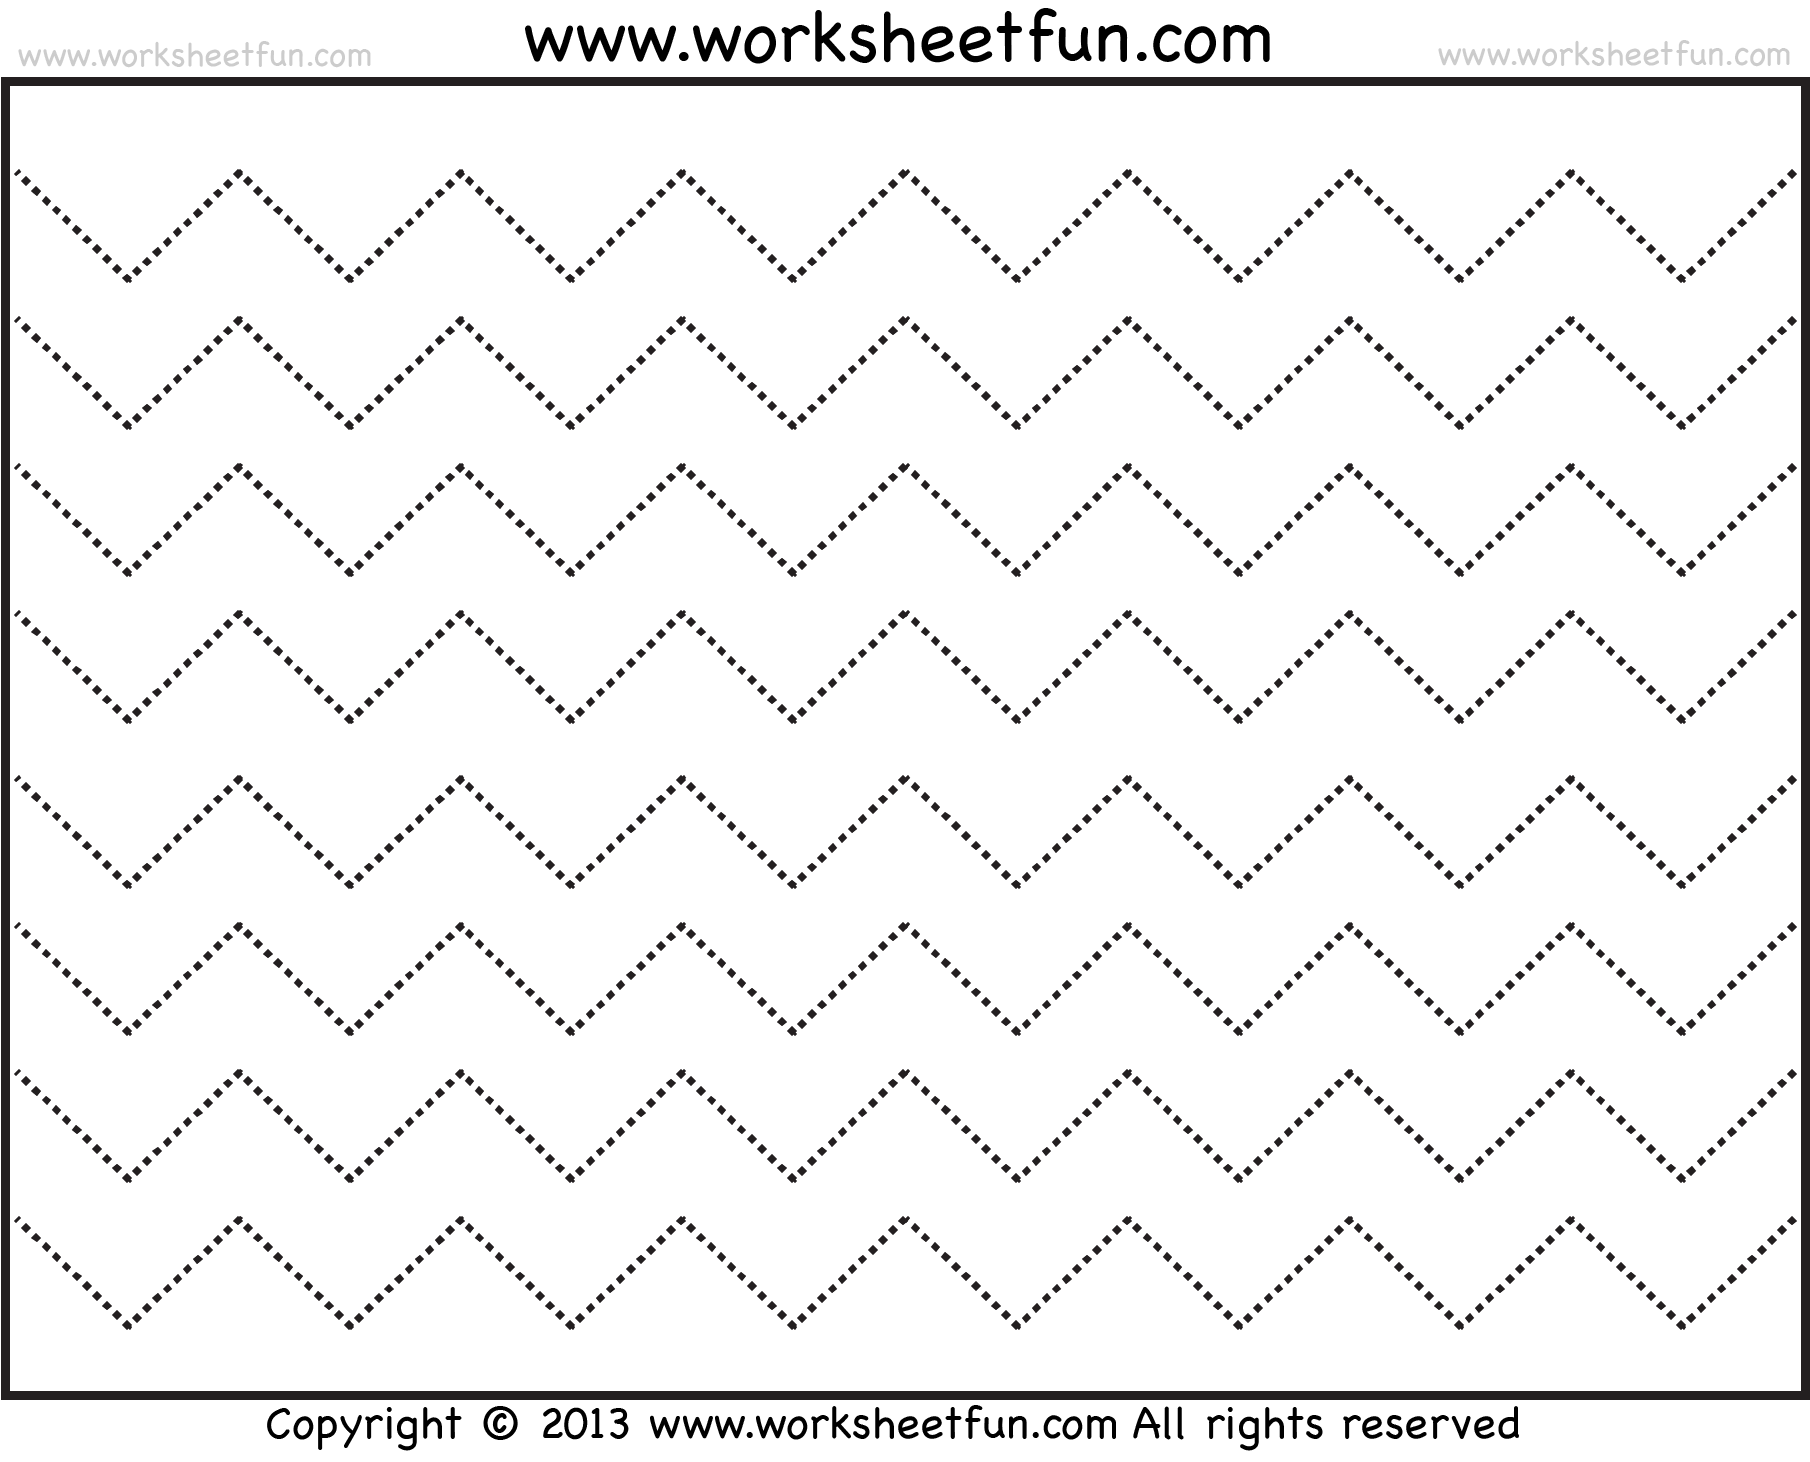 Zig zag line line worksheet pinterest zig zag, tracing Cool Line Art Disney Cruise Line Coloring Pages Black and White Coloring Pages